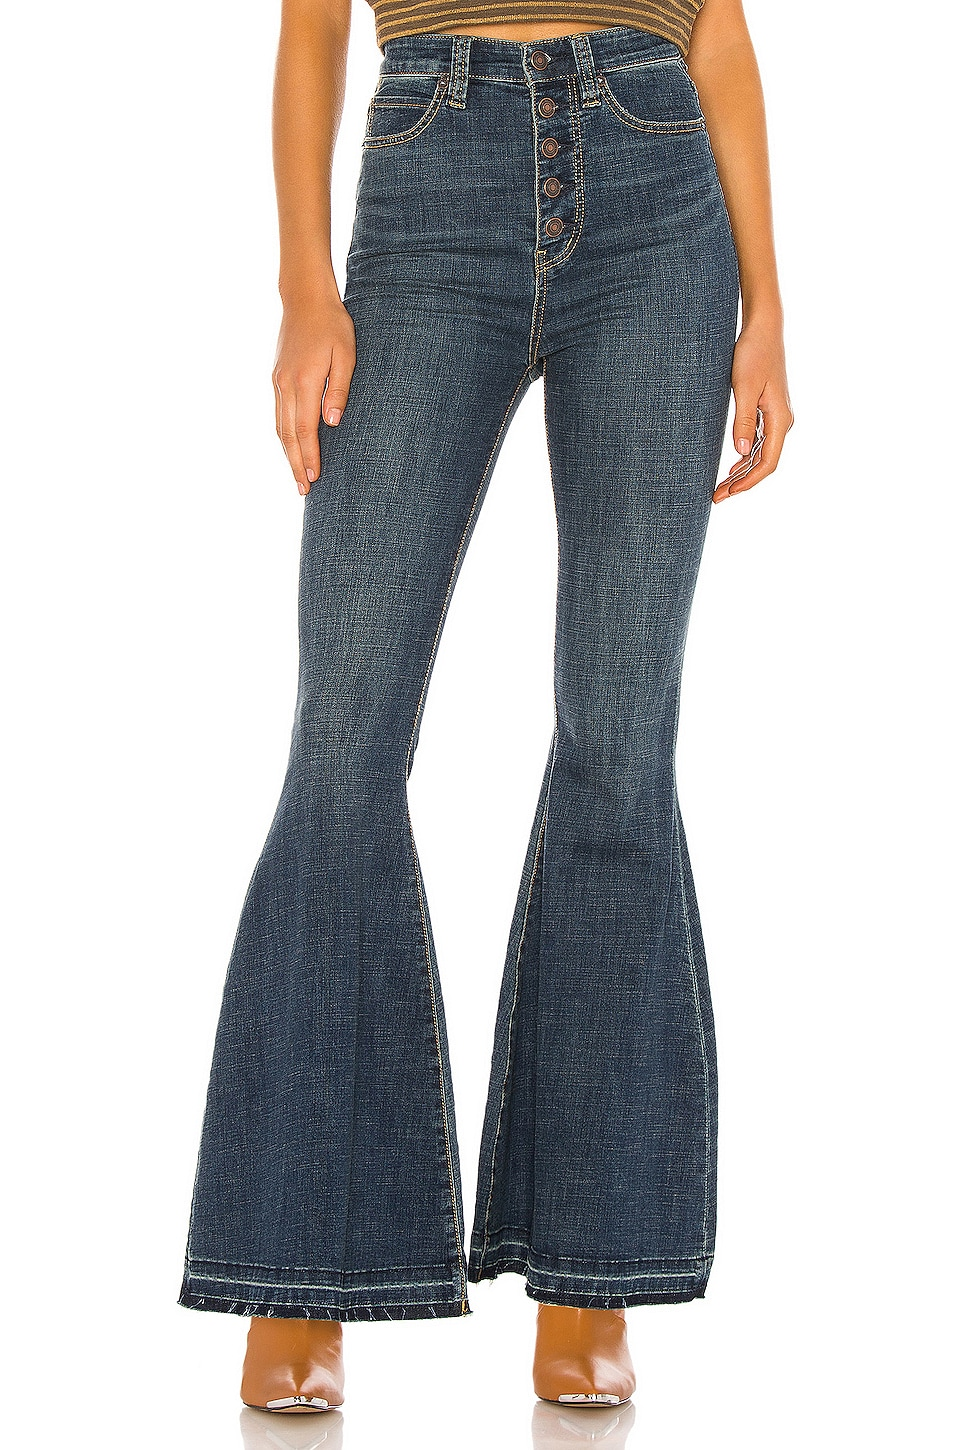 Free People Irreplaceable Flare Jean in Blue